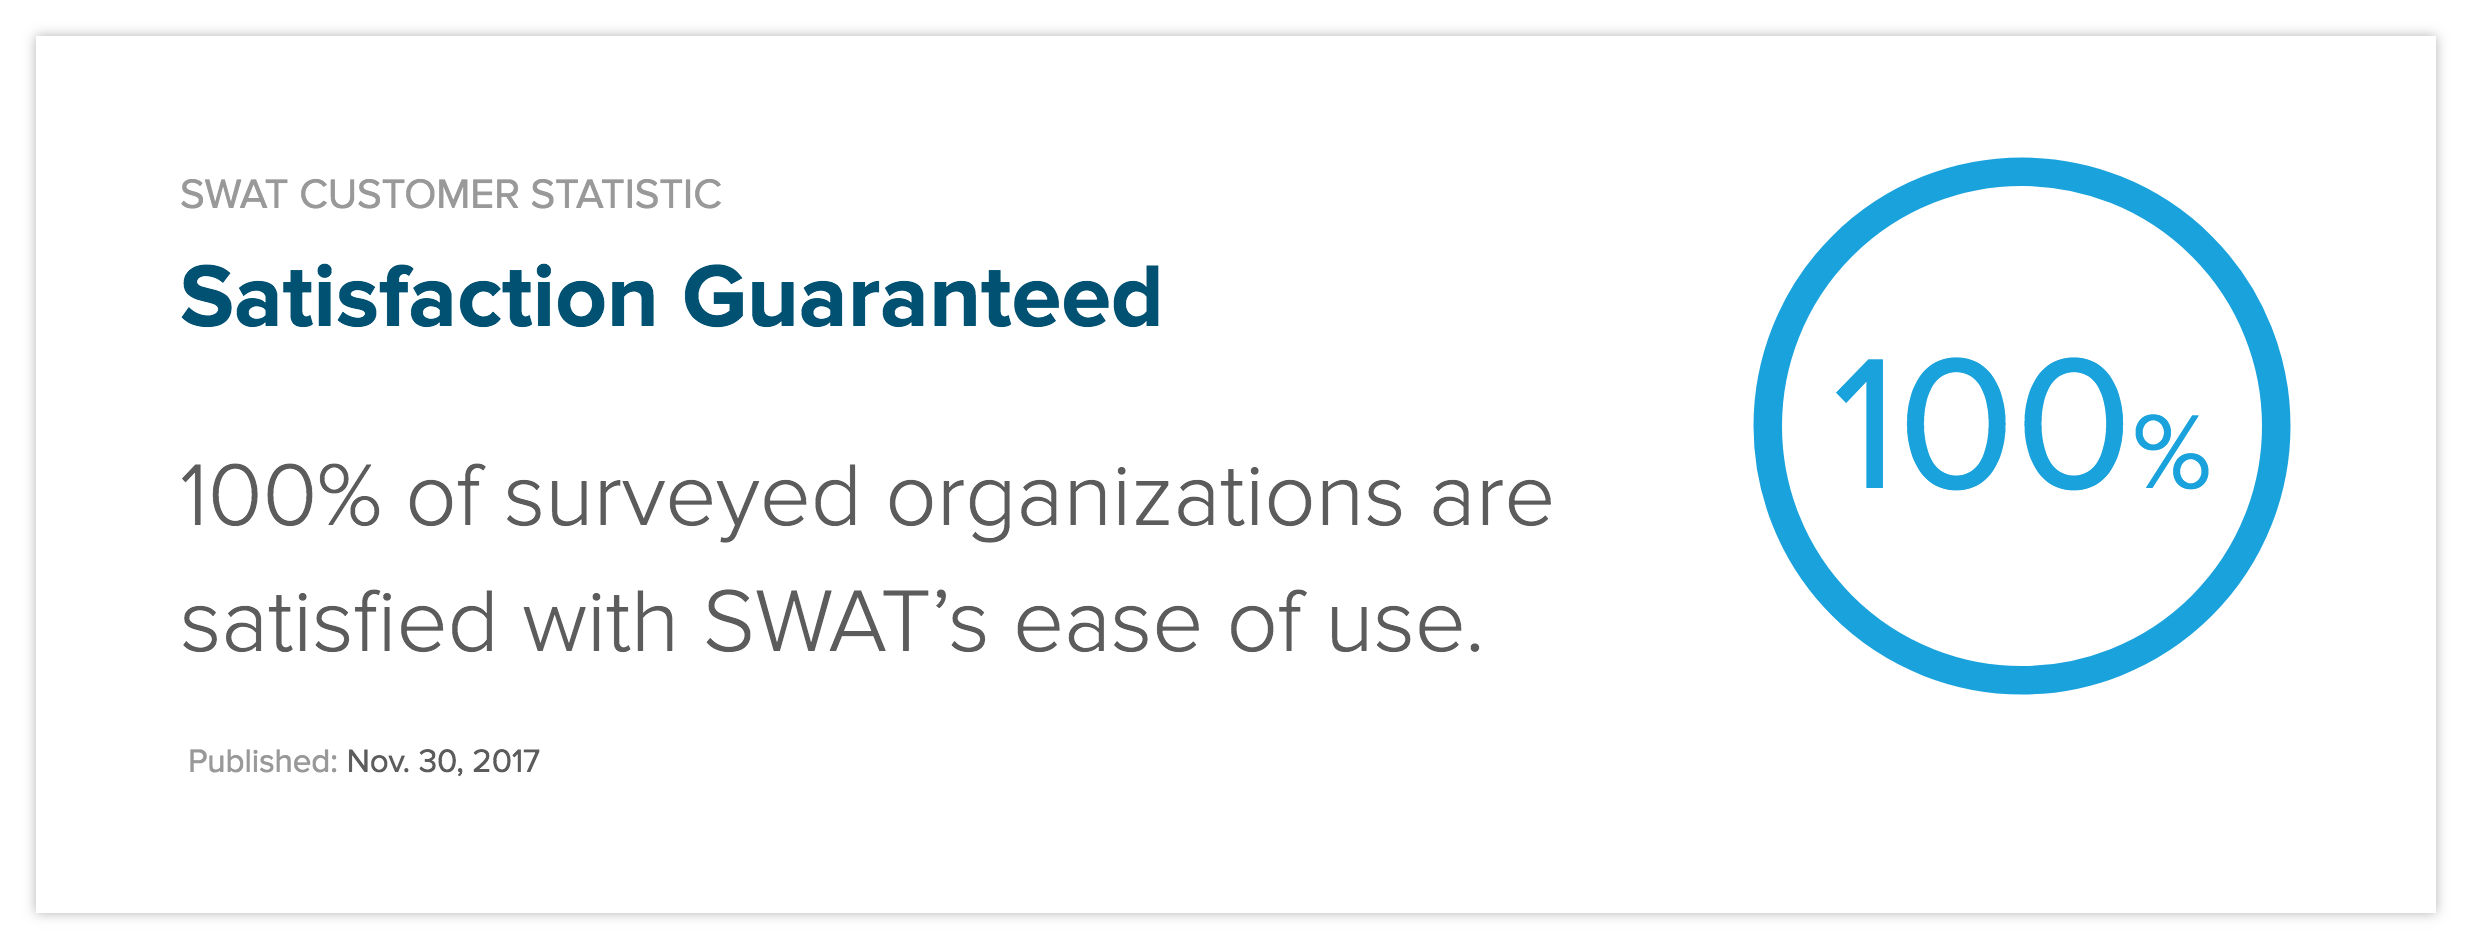 100% of surveyed organizations are satisfied with SWAT's ease of use